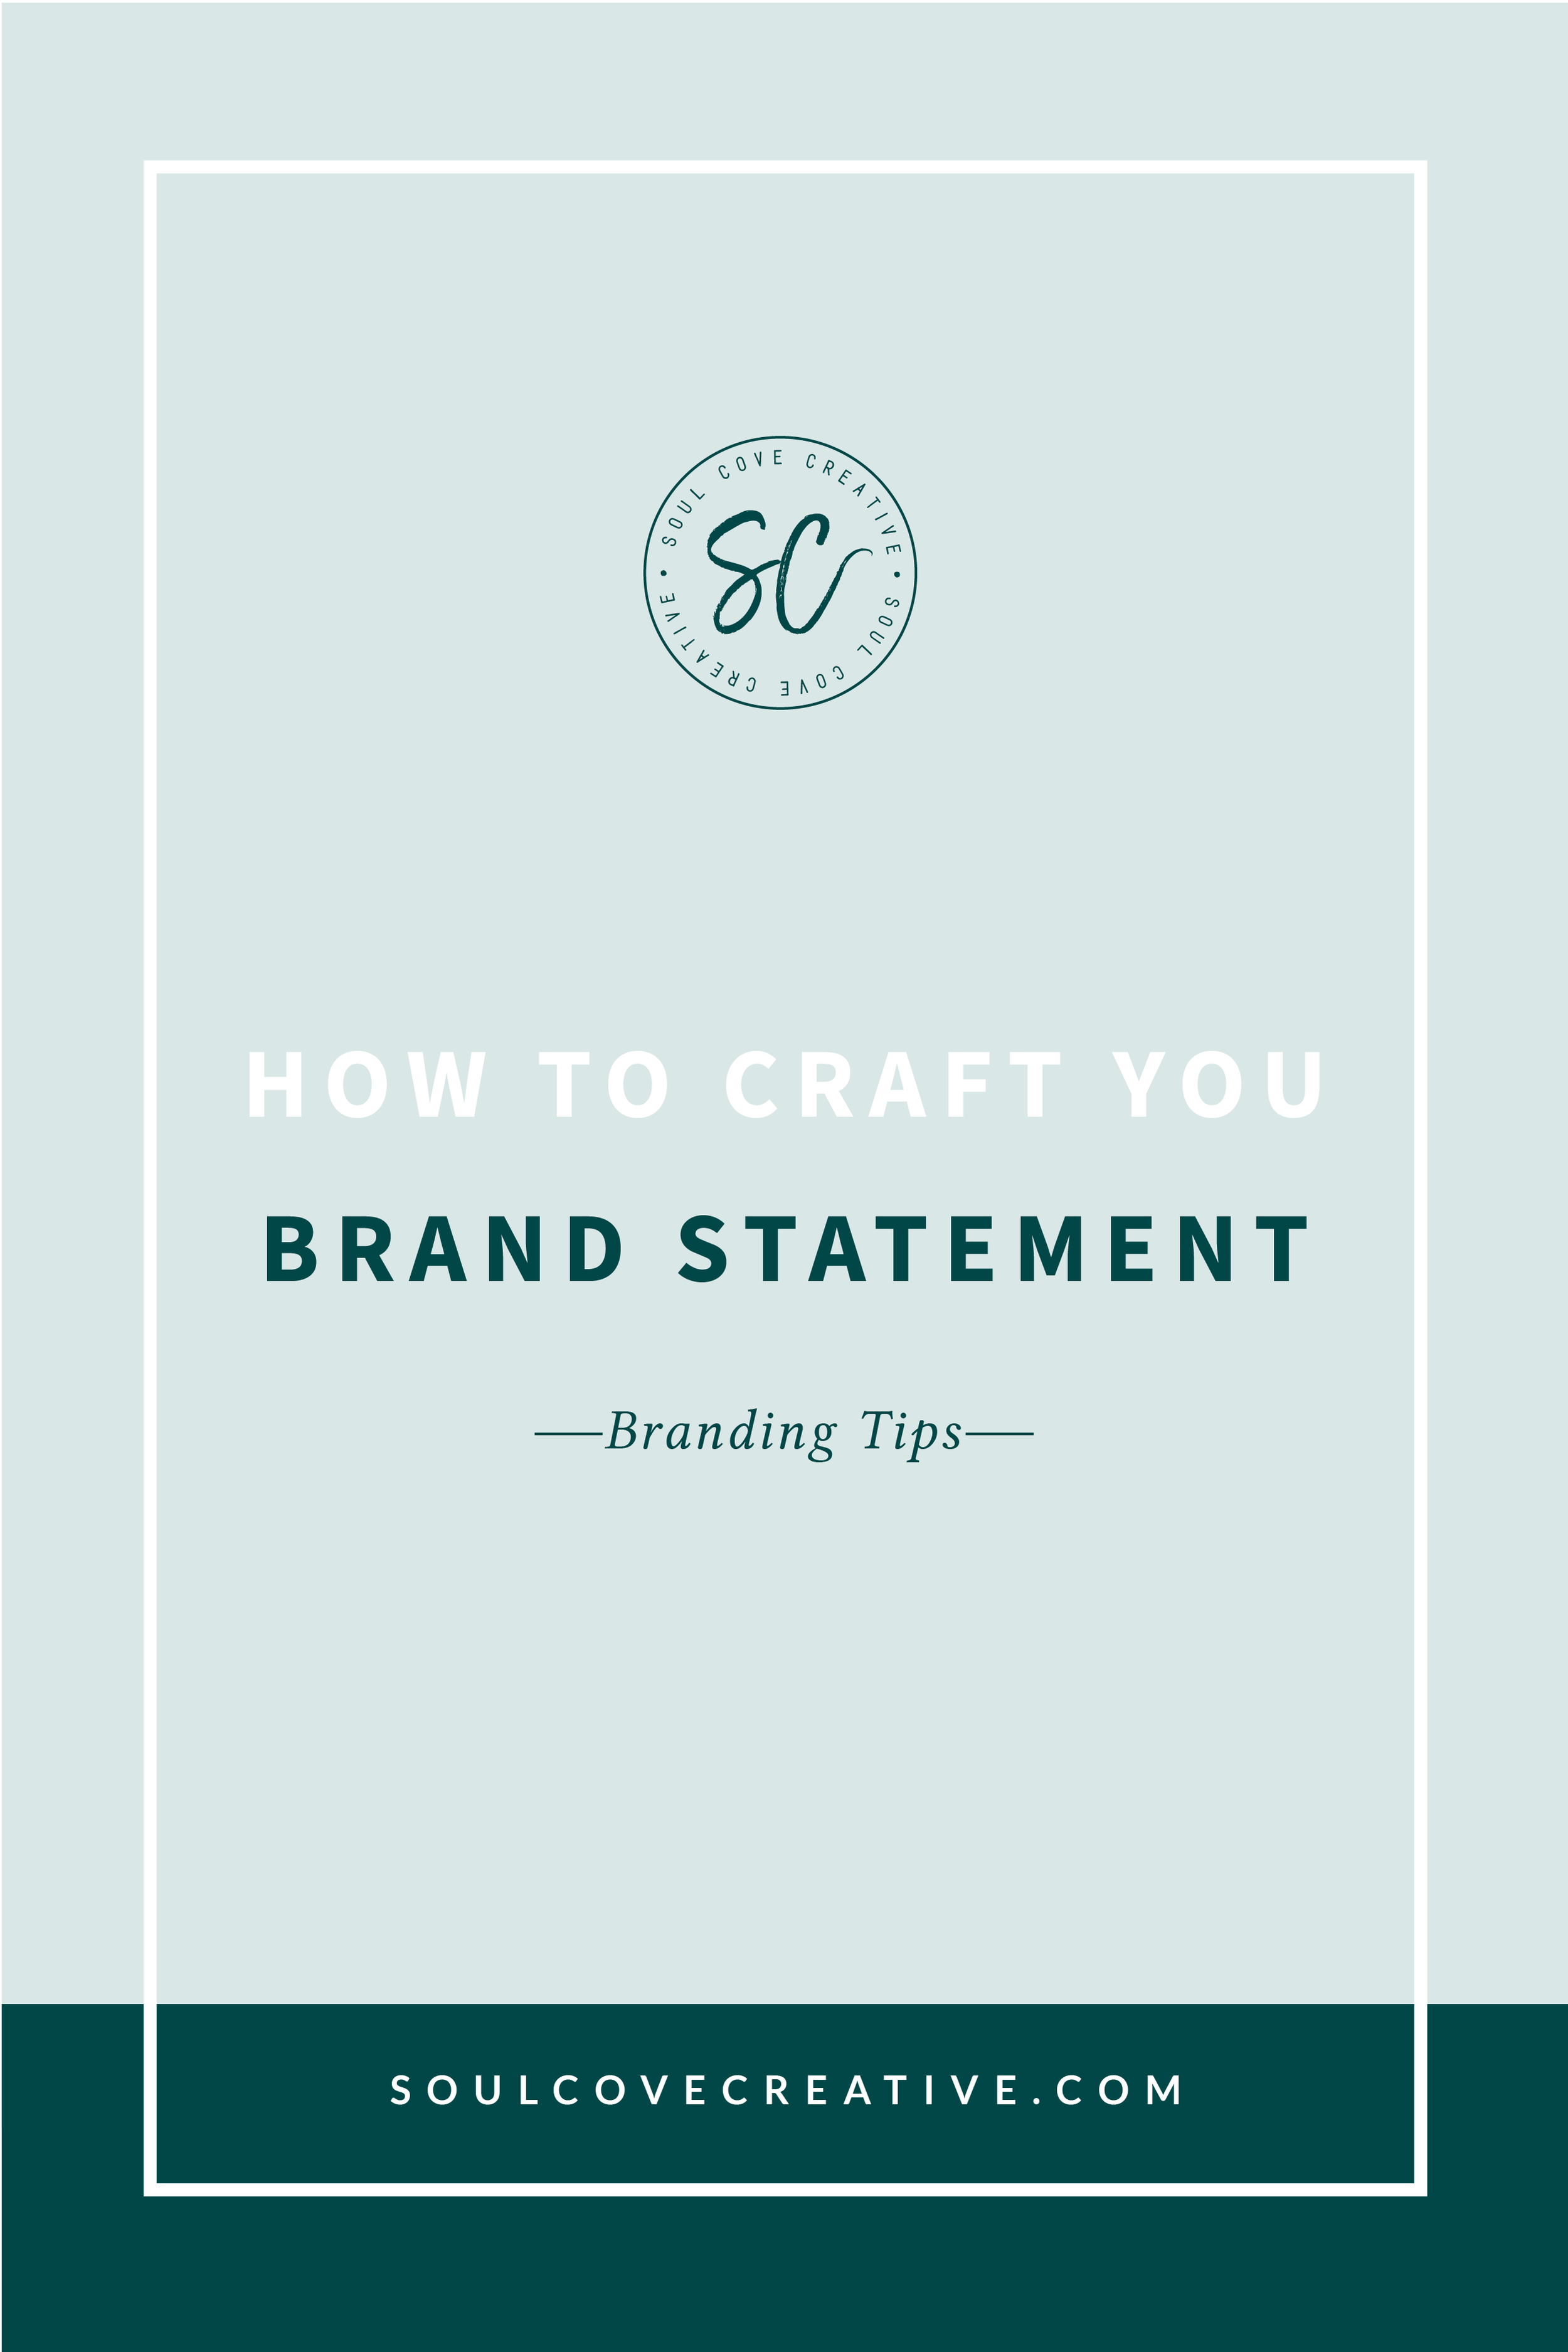 How to Craft your Brand Statement